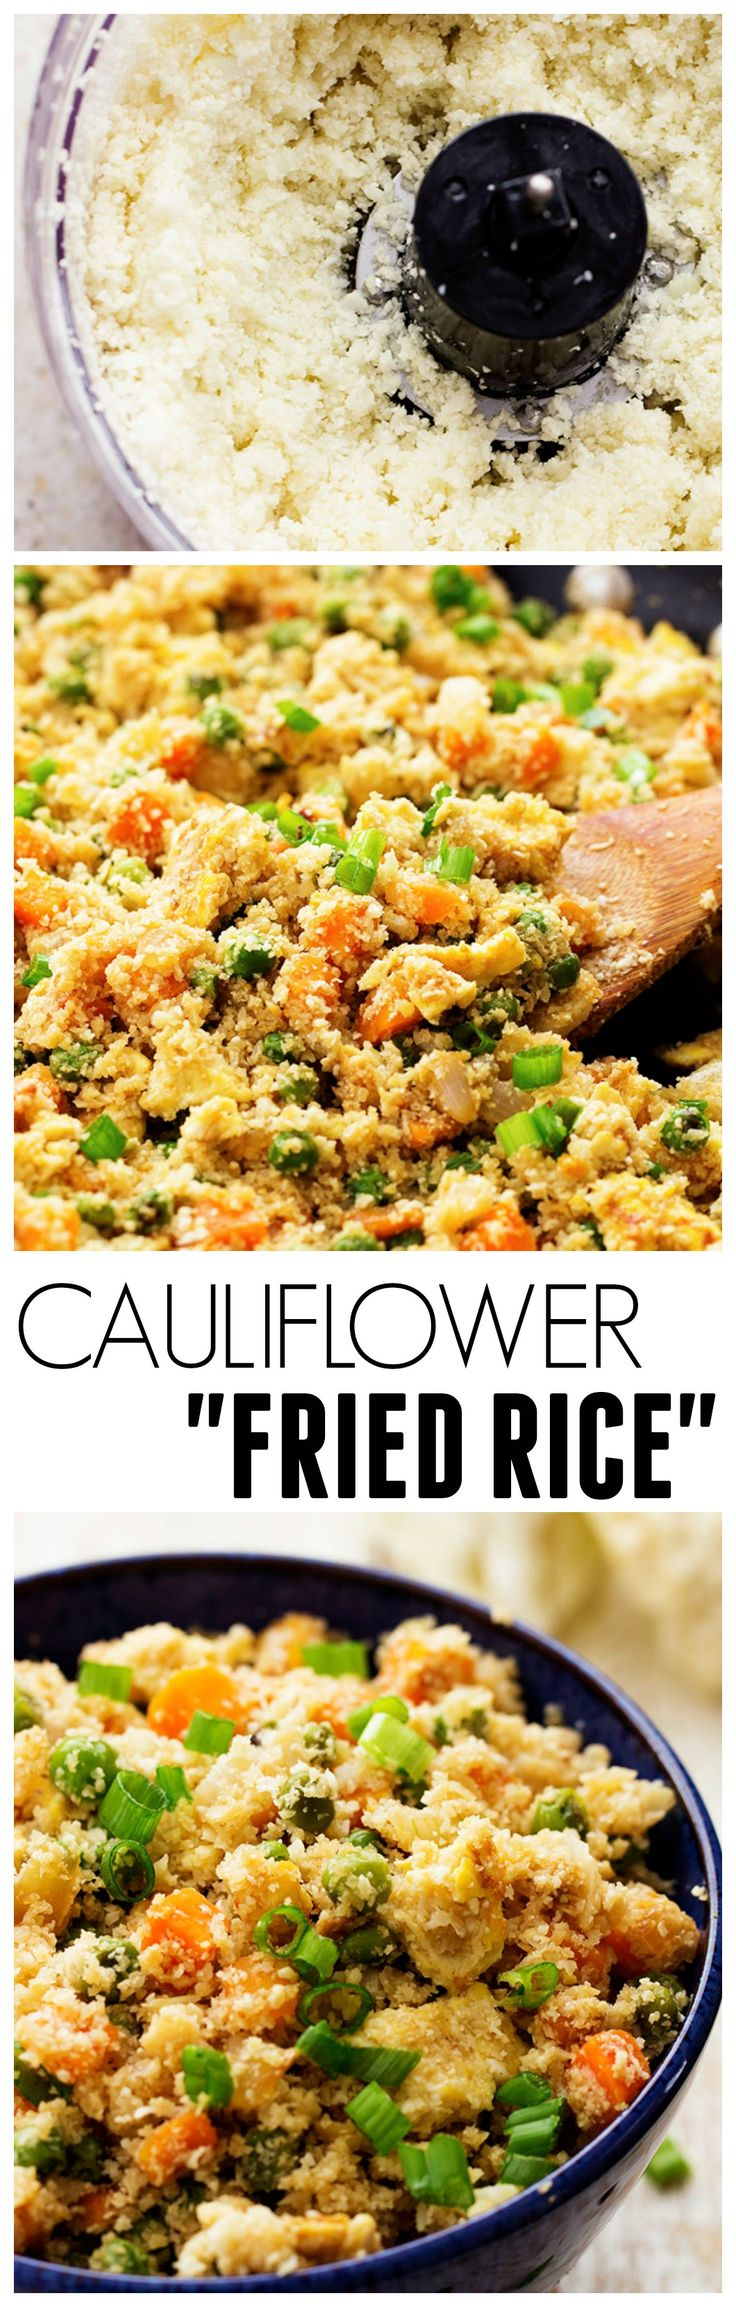 asics enduro review Cauliflower Fried Rice | Recipe